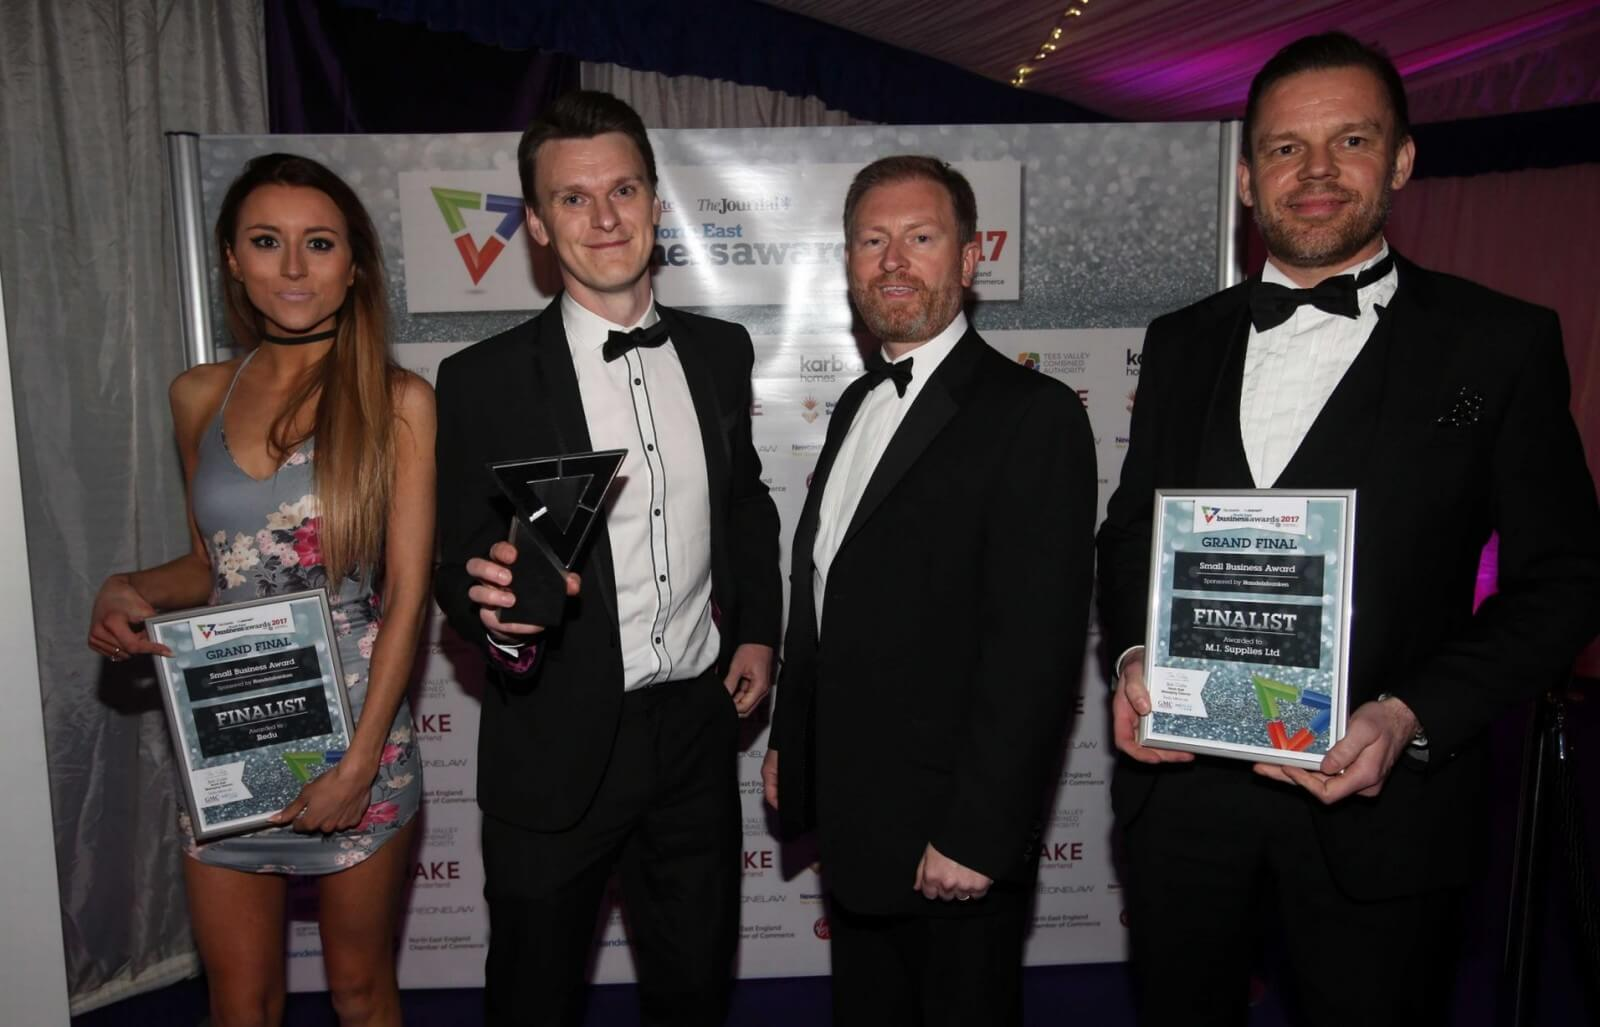 Atomhawk: Best Small Business - North East 2017